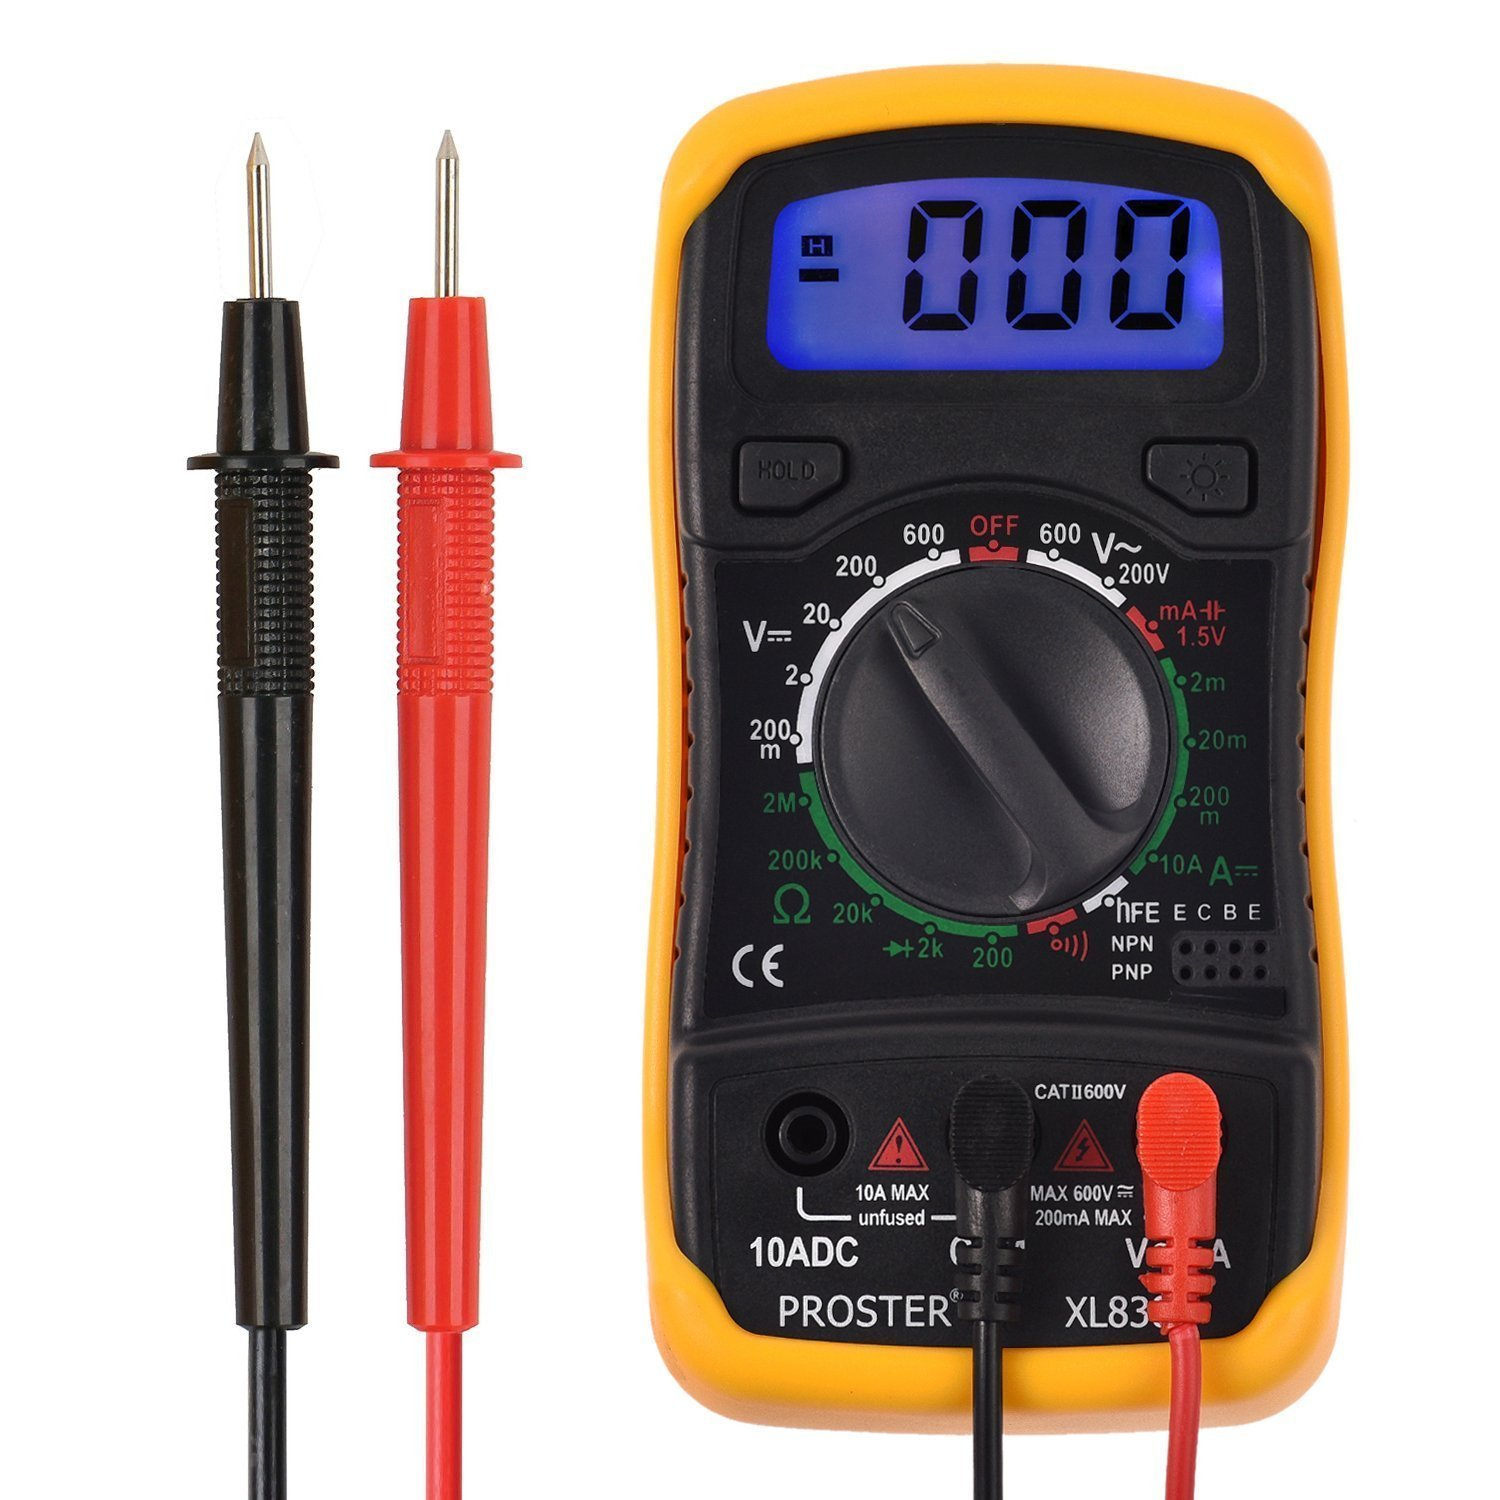 Digital Multimeter Symbols : Proster digital multimeters mini multimeter pocket